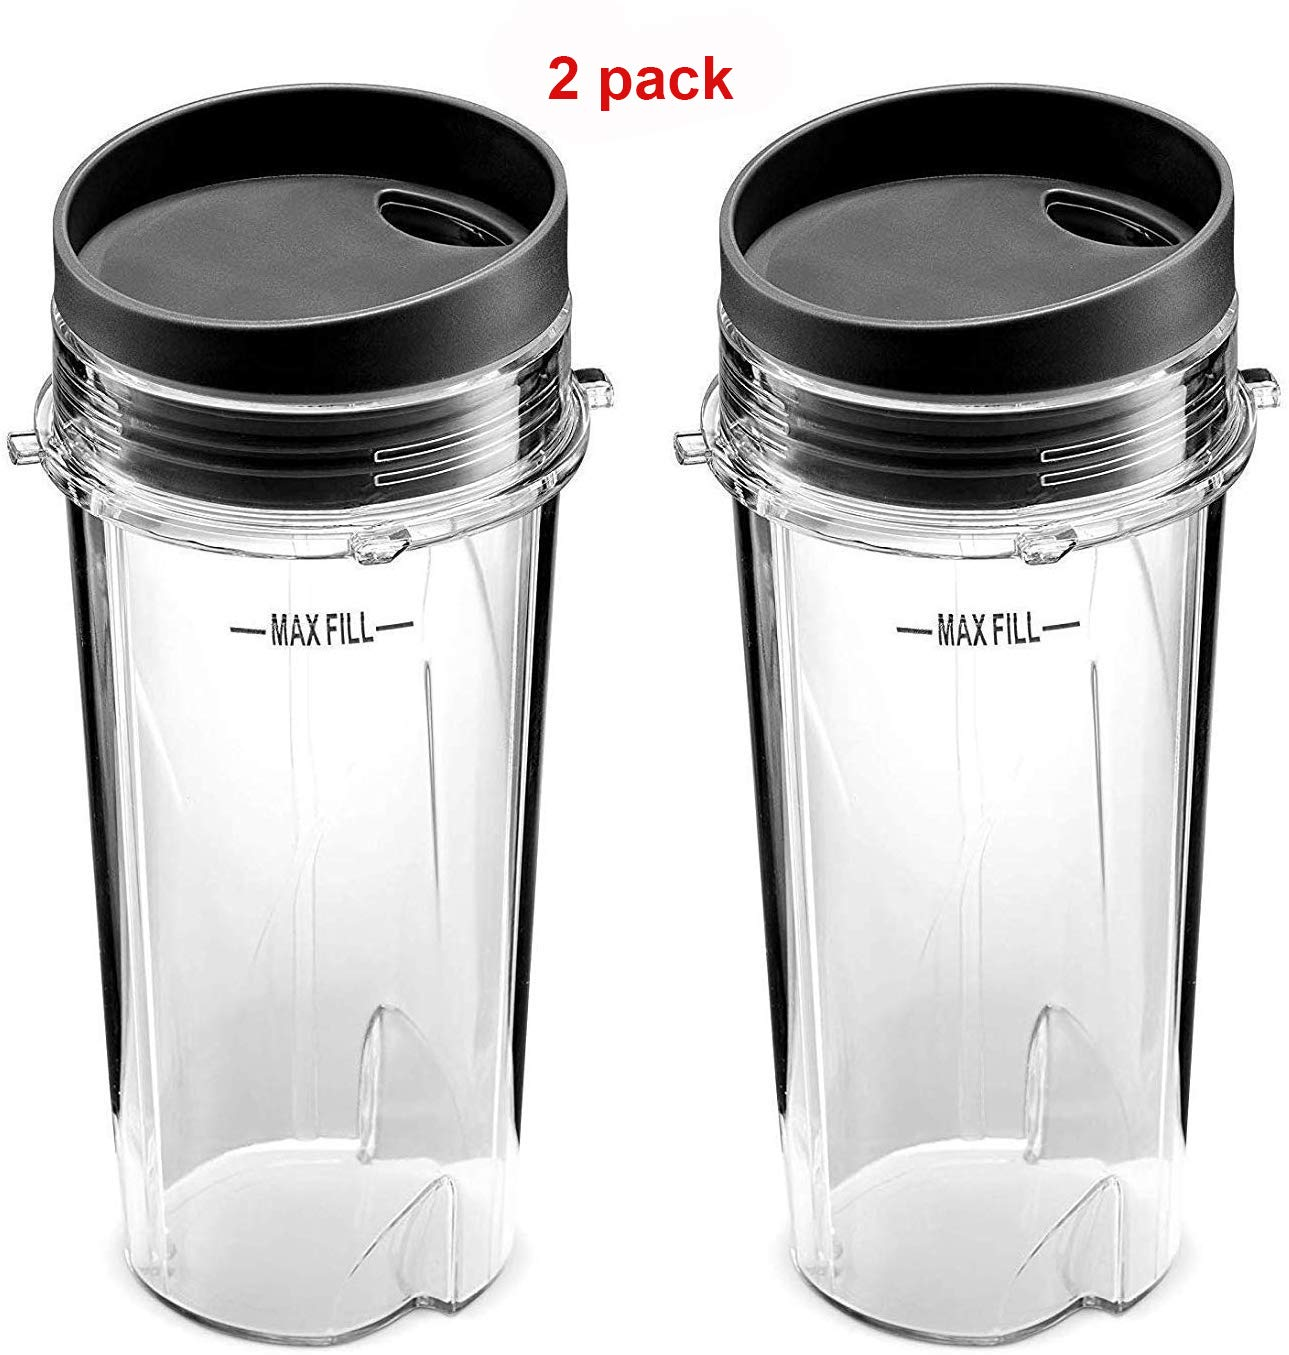 Replacement Part for Nutri Ninja Blender,16 oz Cup with 2 Sip&Seal for BL770 BL780 BL660 All Pro 4 Tab Blenders (Pack of 2)